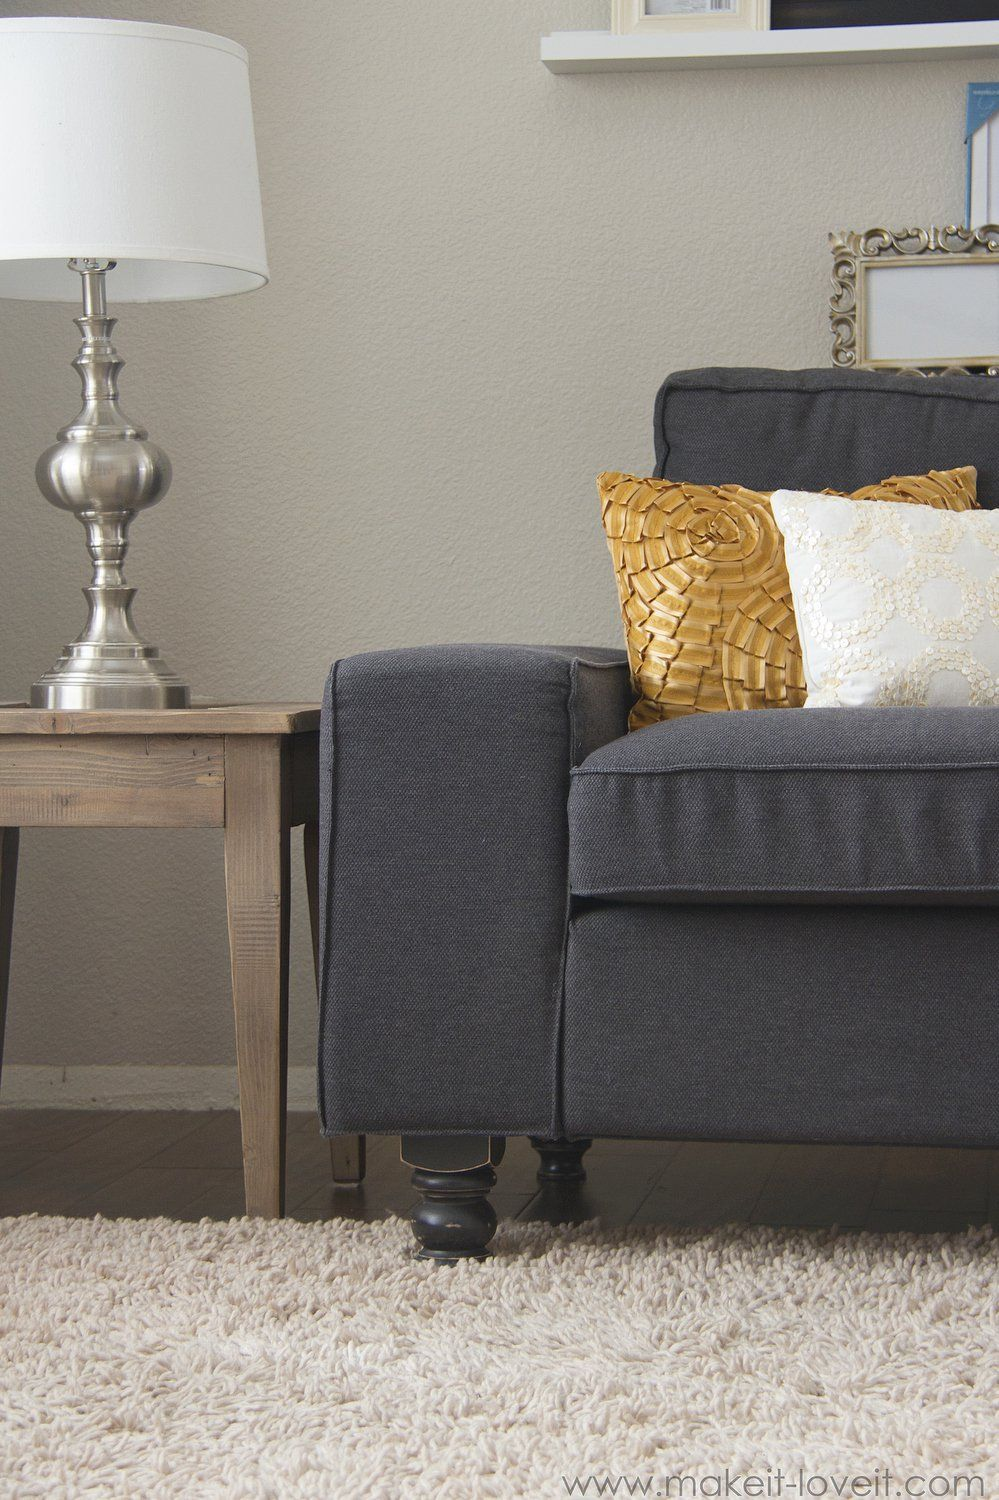 Home Improvement Custom Couch Or Arm Chair Legs